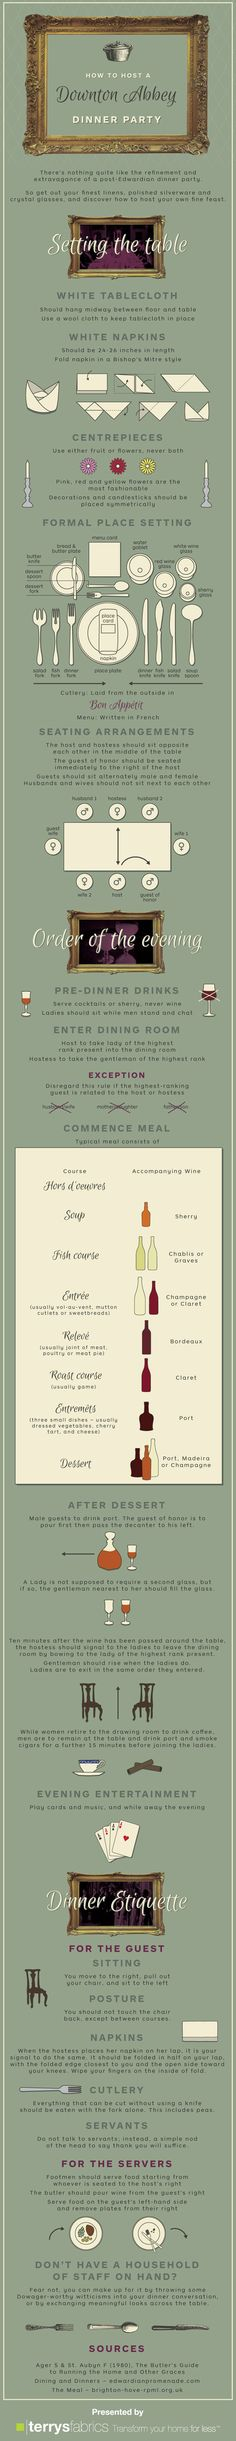 How to host a Downton Abbey dinner party - wish I had some local Downton Abbey friends to host one of these!